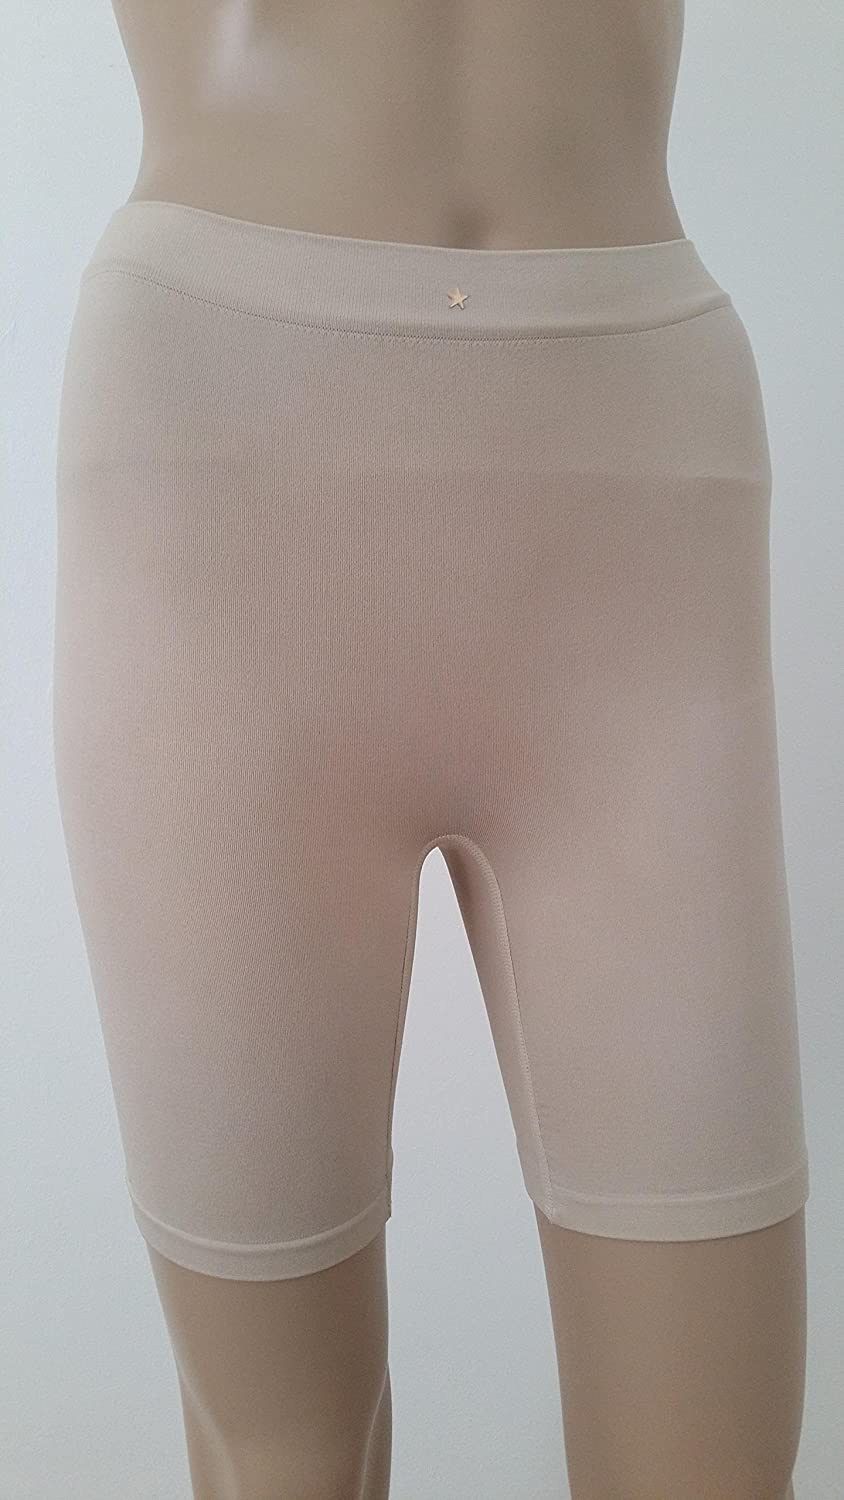 Horse Riding Underwear Ladies Seamless Long Knicker Shorts In Nude Large Xl Amazon Co Uk Sports Outdoors